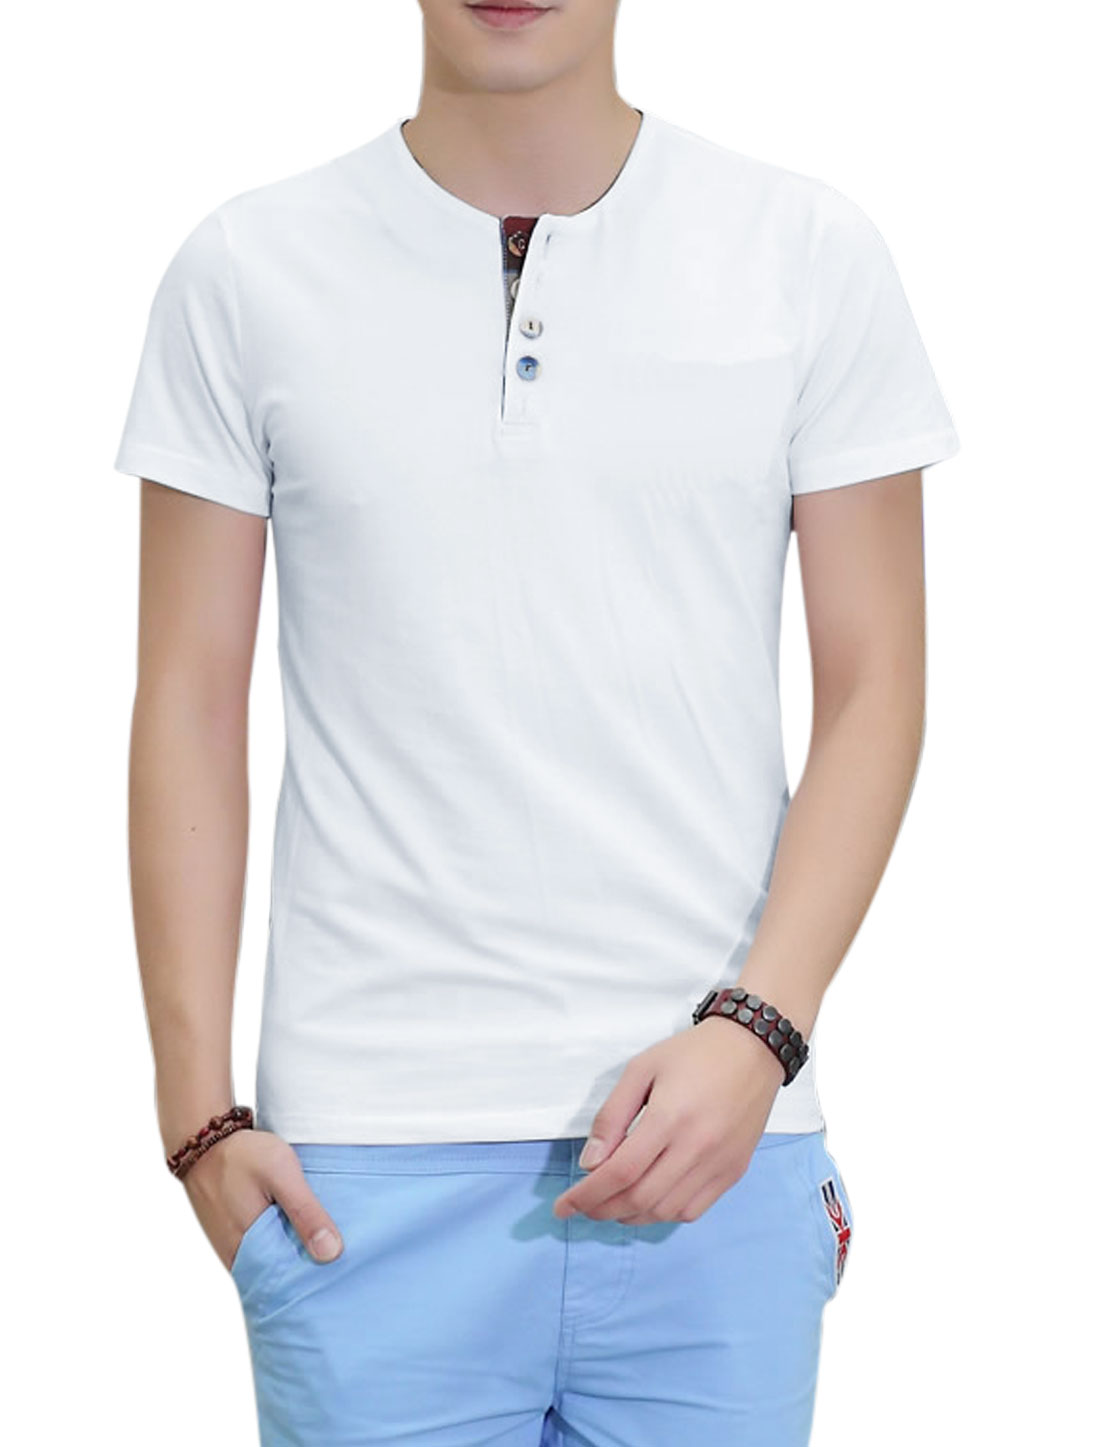 Round Neck Short Sleeve 1/4 Placket T-Shirt for Men White M